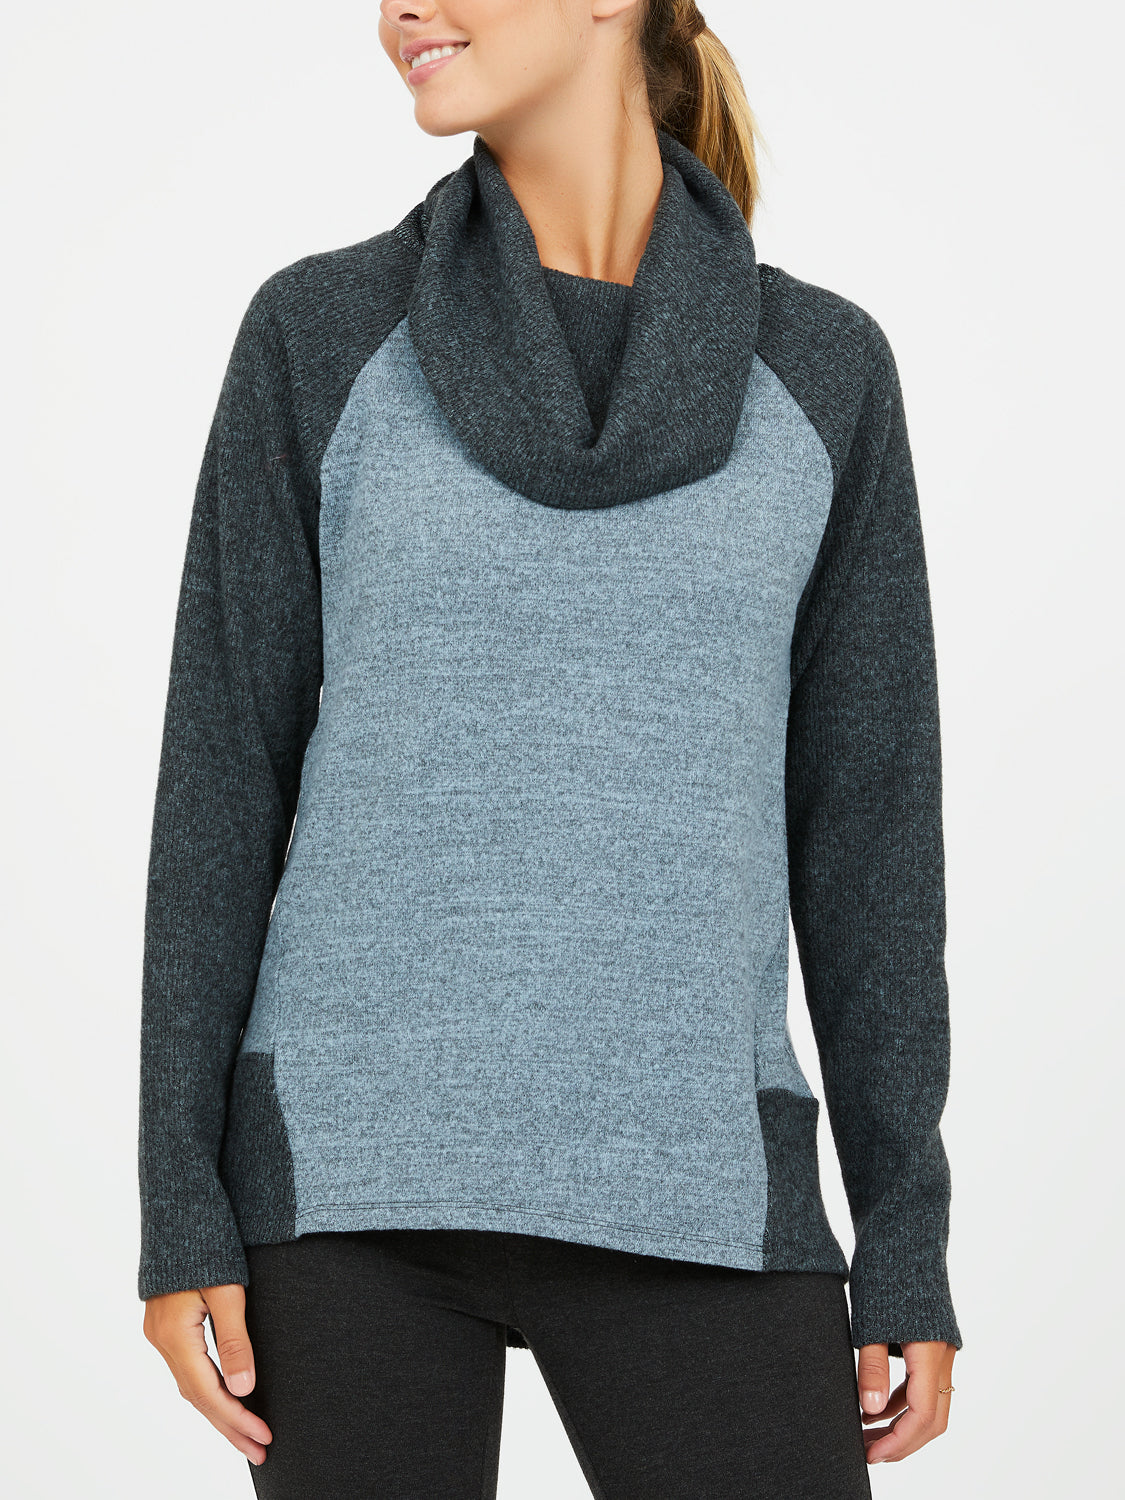 Mélange Knit Cowl Neck Top